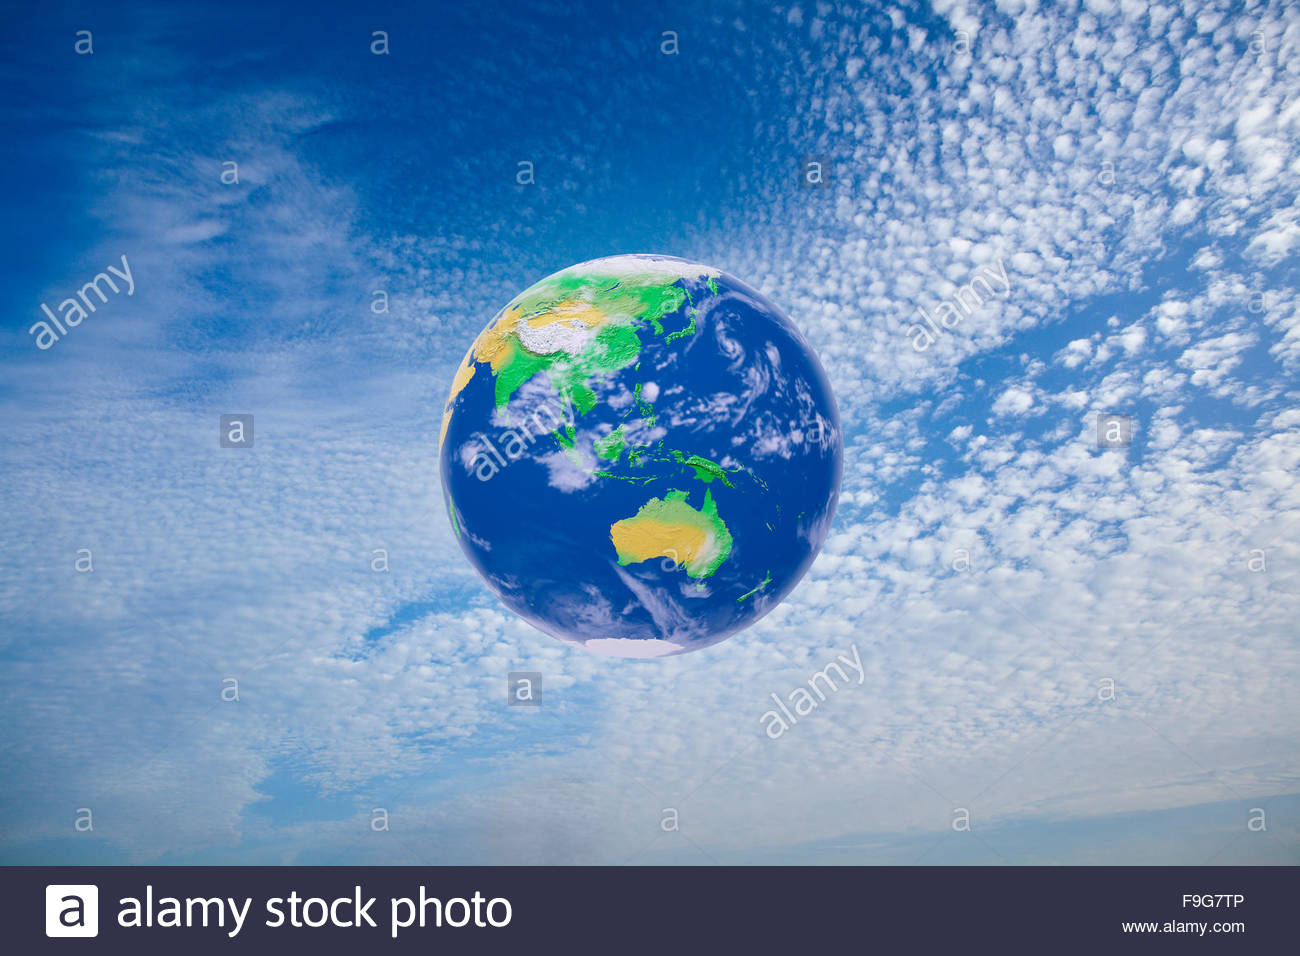 Concept illustration of the earth surrounded by it's atmosphere. - Stock Image